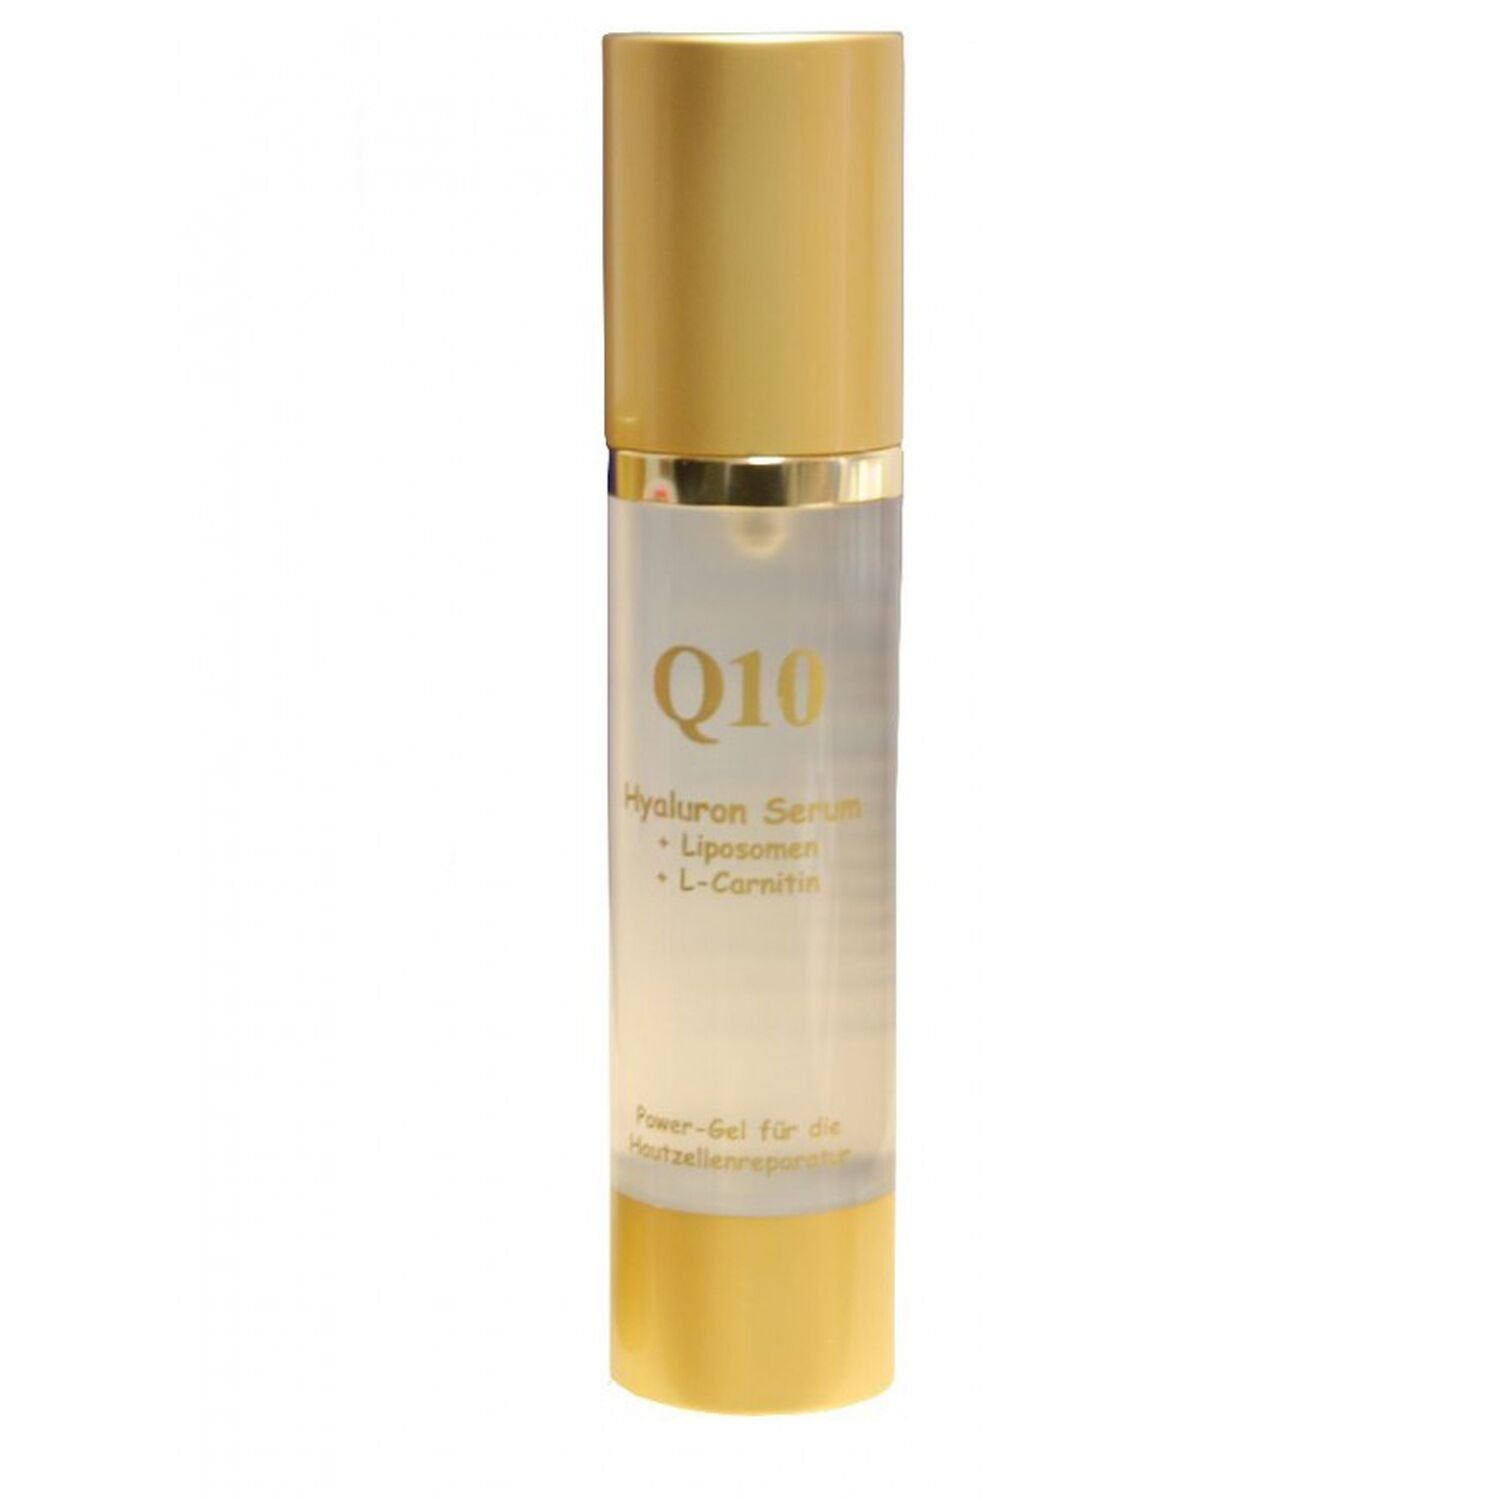 NCM Q10 Hyaluron Serum 50ml